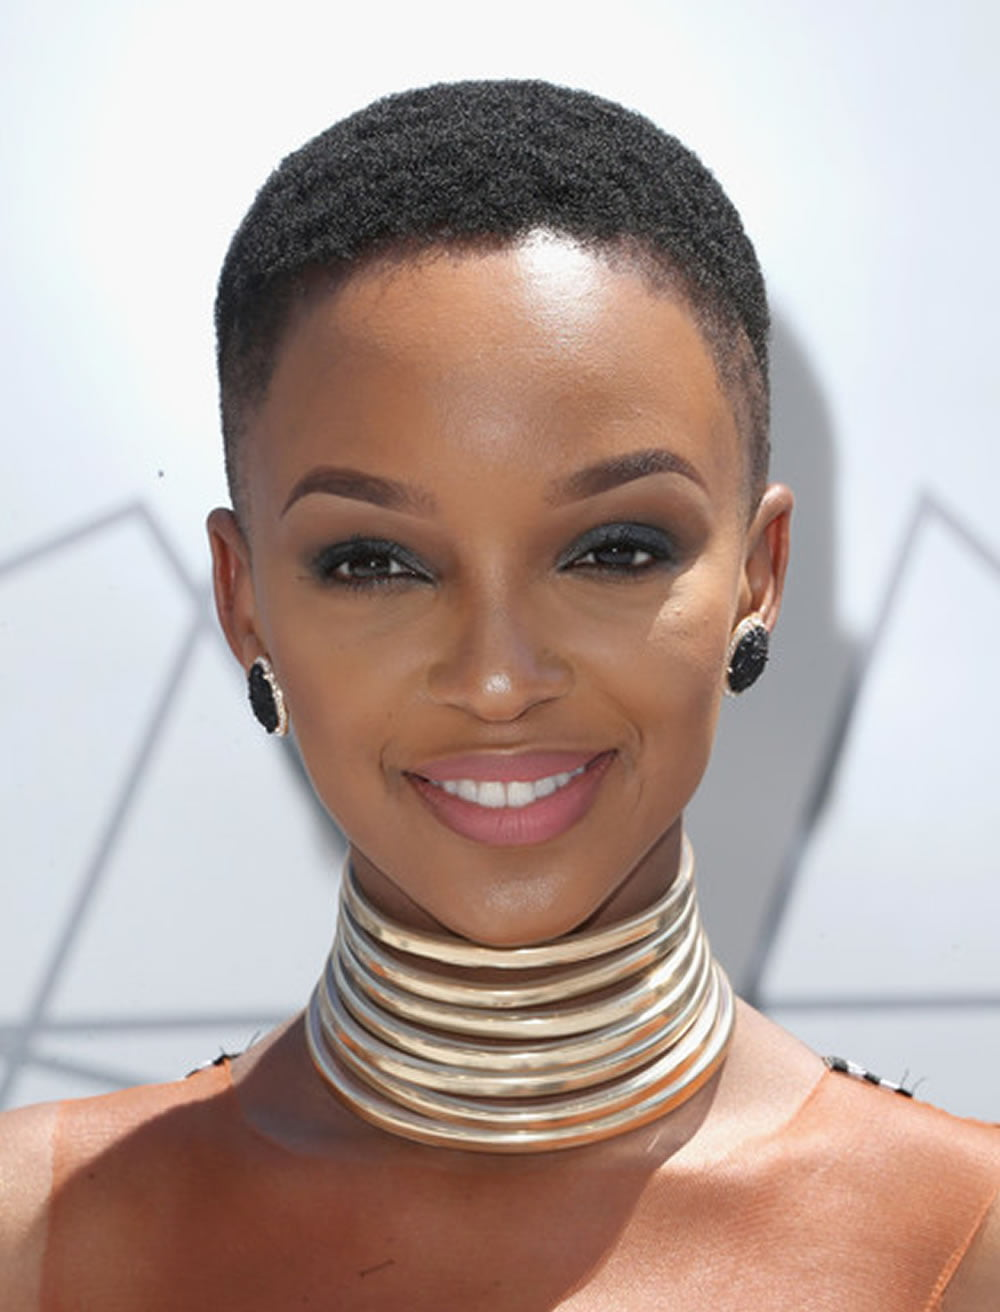 Pixie haircut 2019 for African American Women | Black hair colours - Page 6 of 6